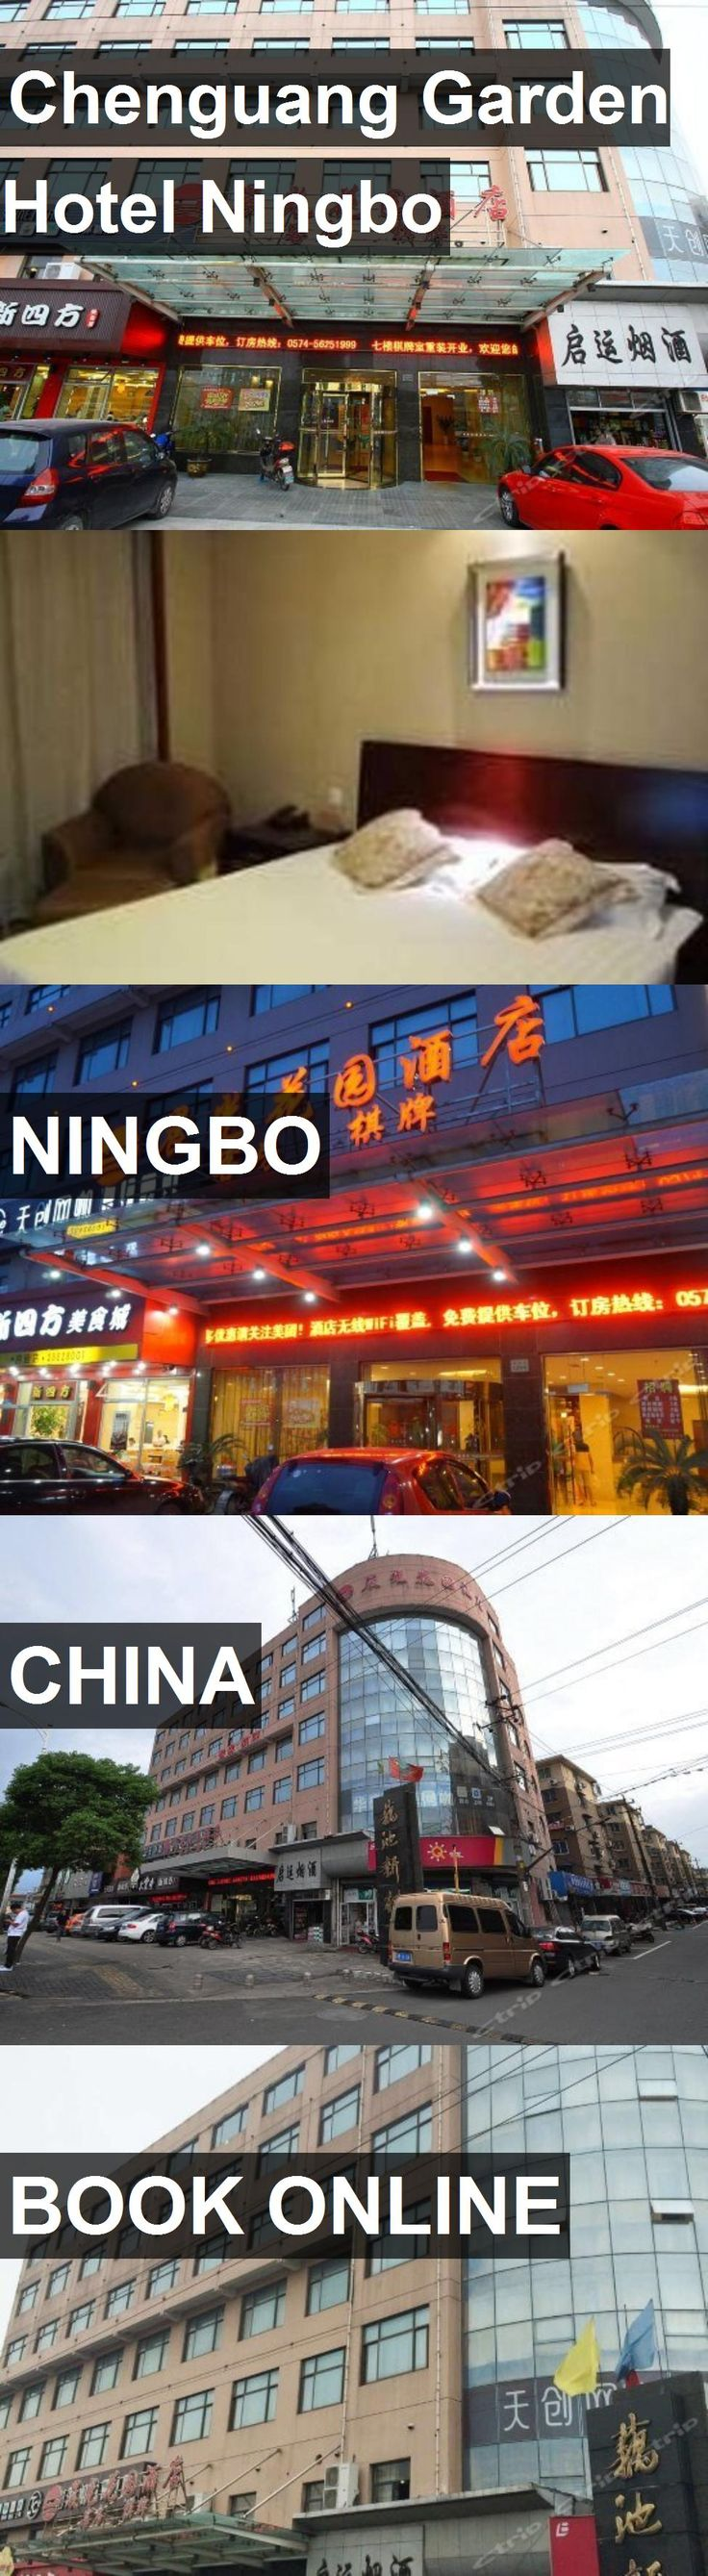 Chenguang Garden Hotel Ningbo in Ningbo, China. For more information, photos, reviews and best prices please follow the link. #China #Ningbo #travel #vacation #hotel